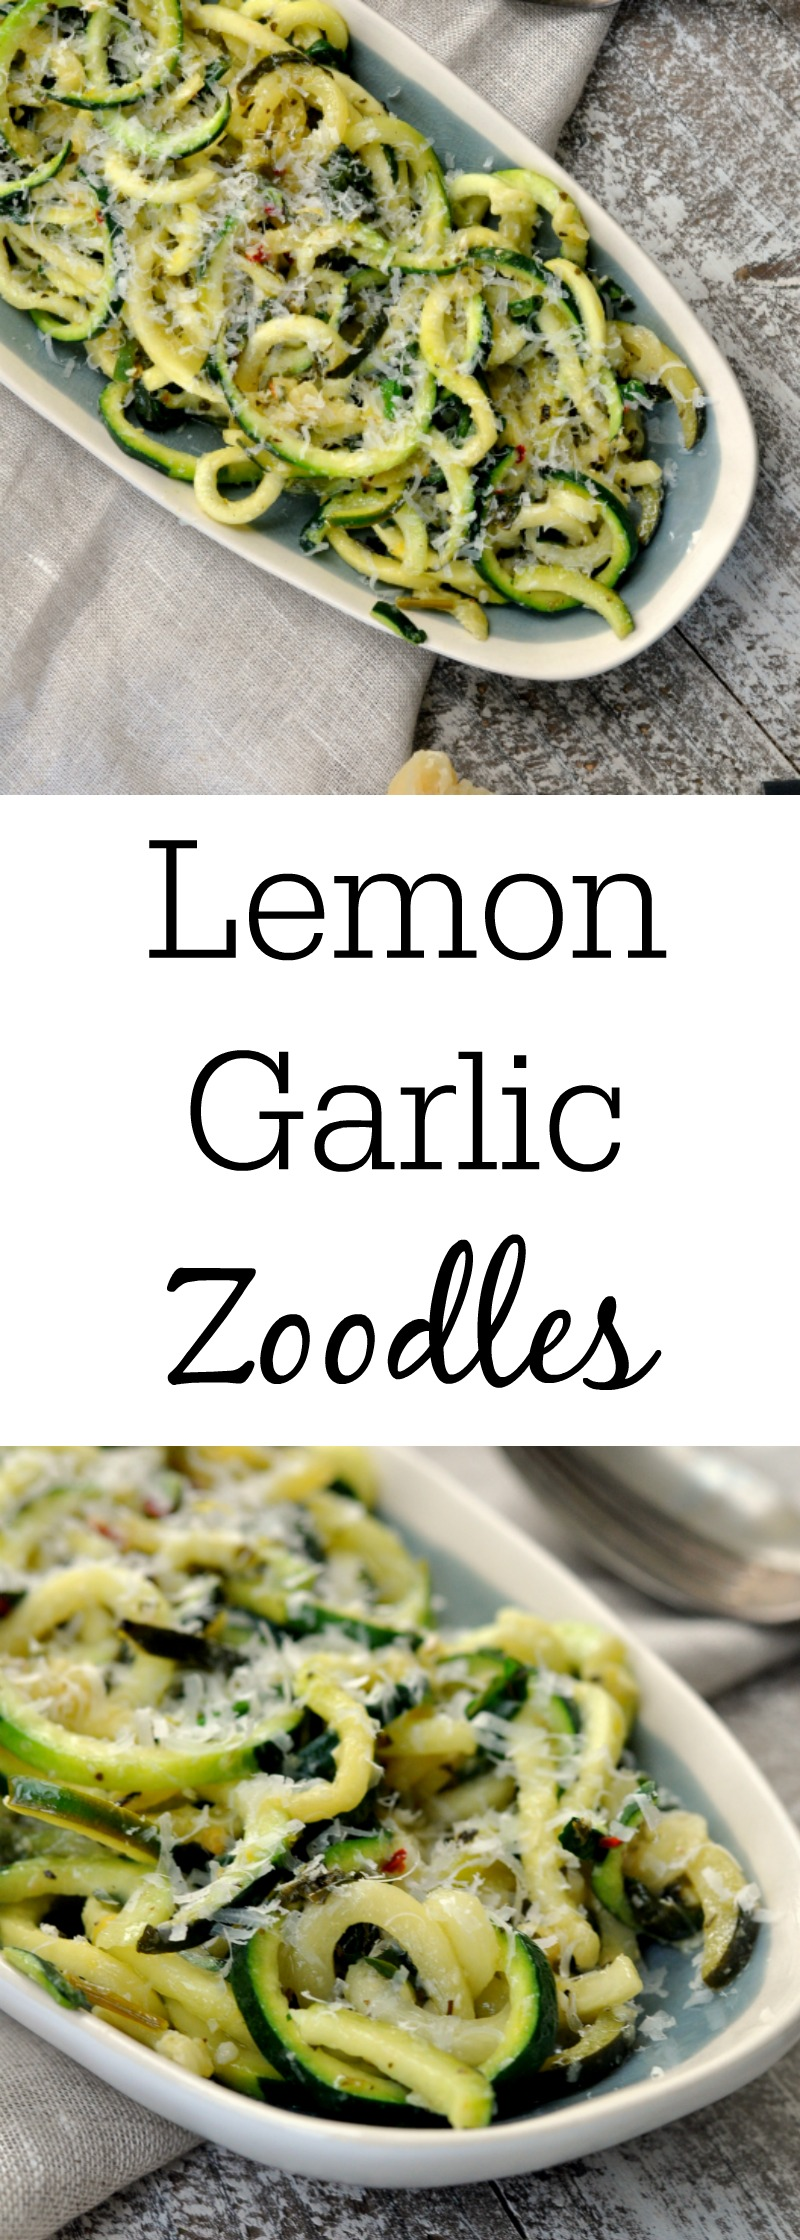 One Pan Lemon Garlic Vegetable Noodles